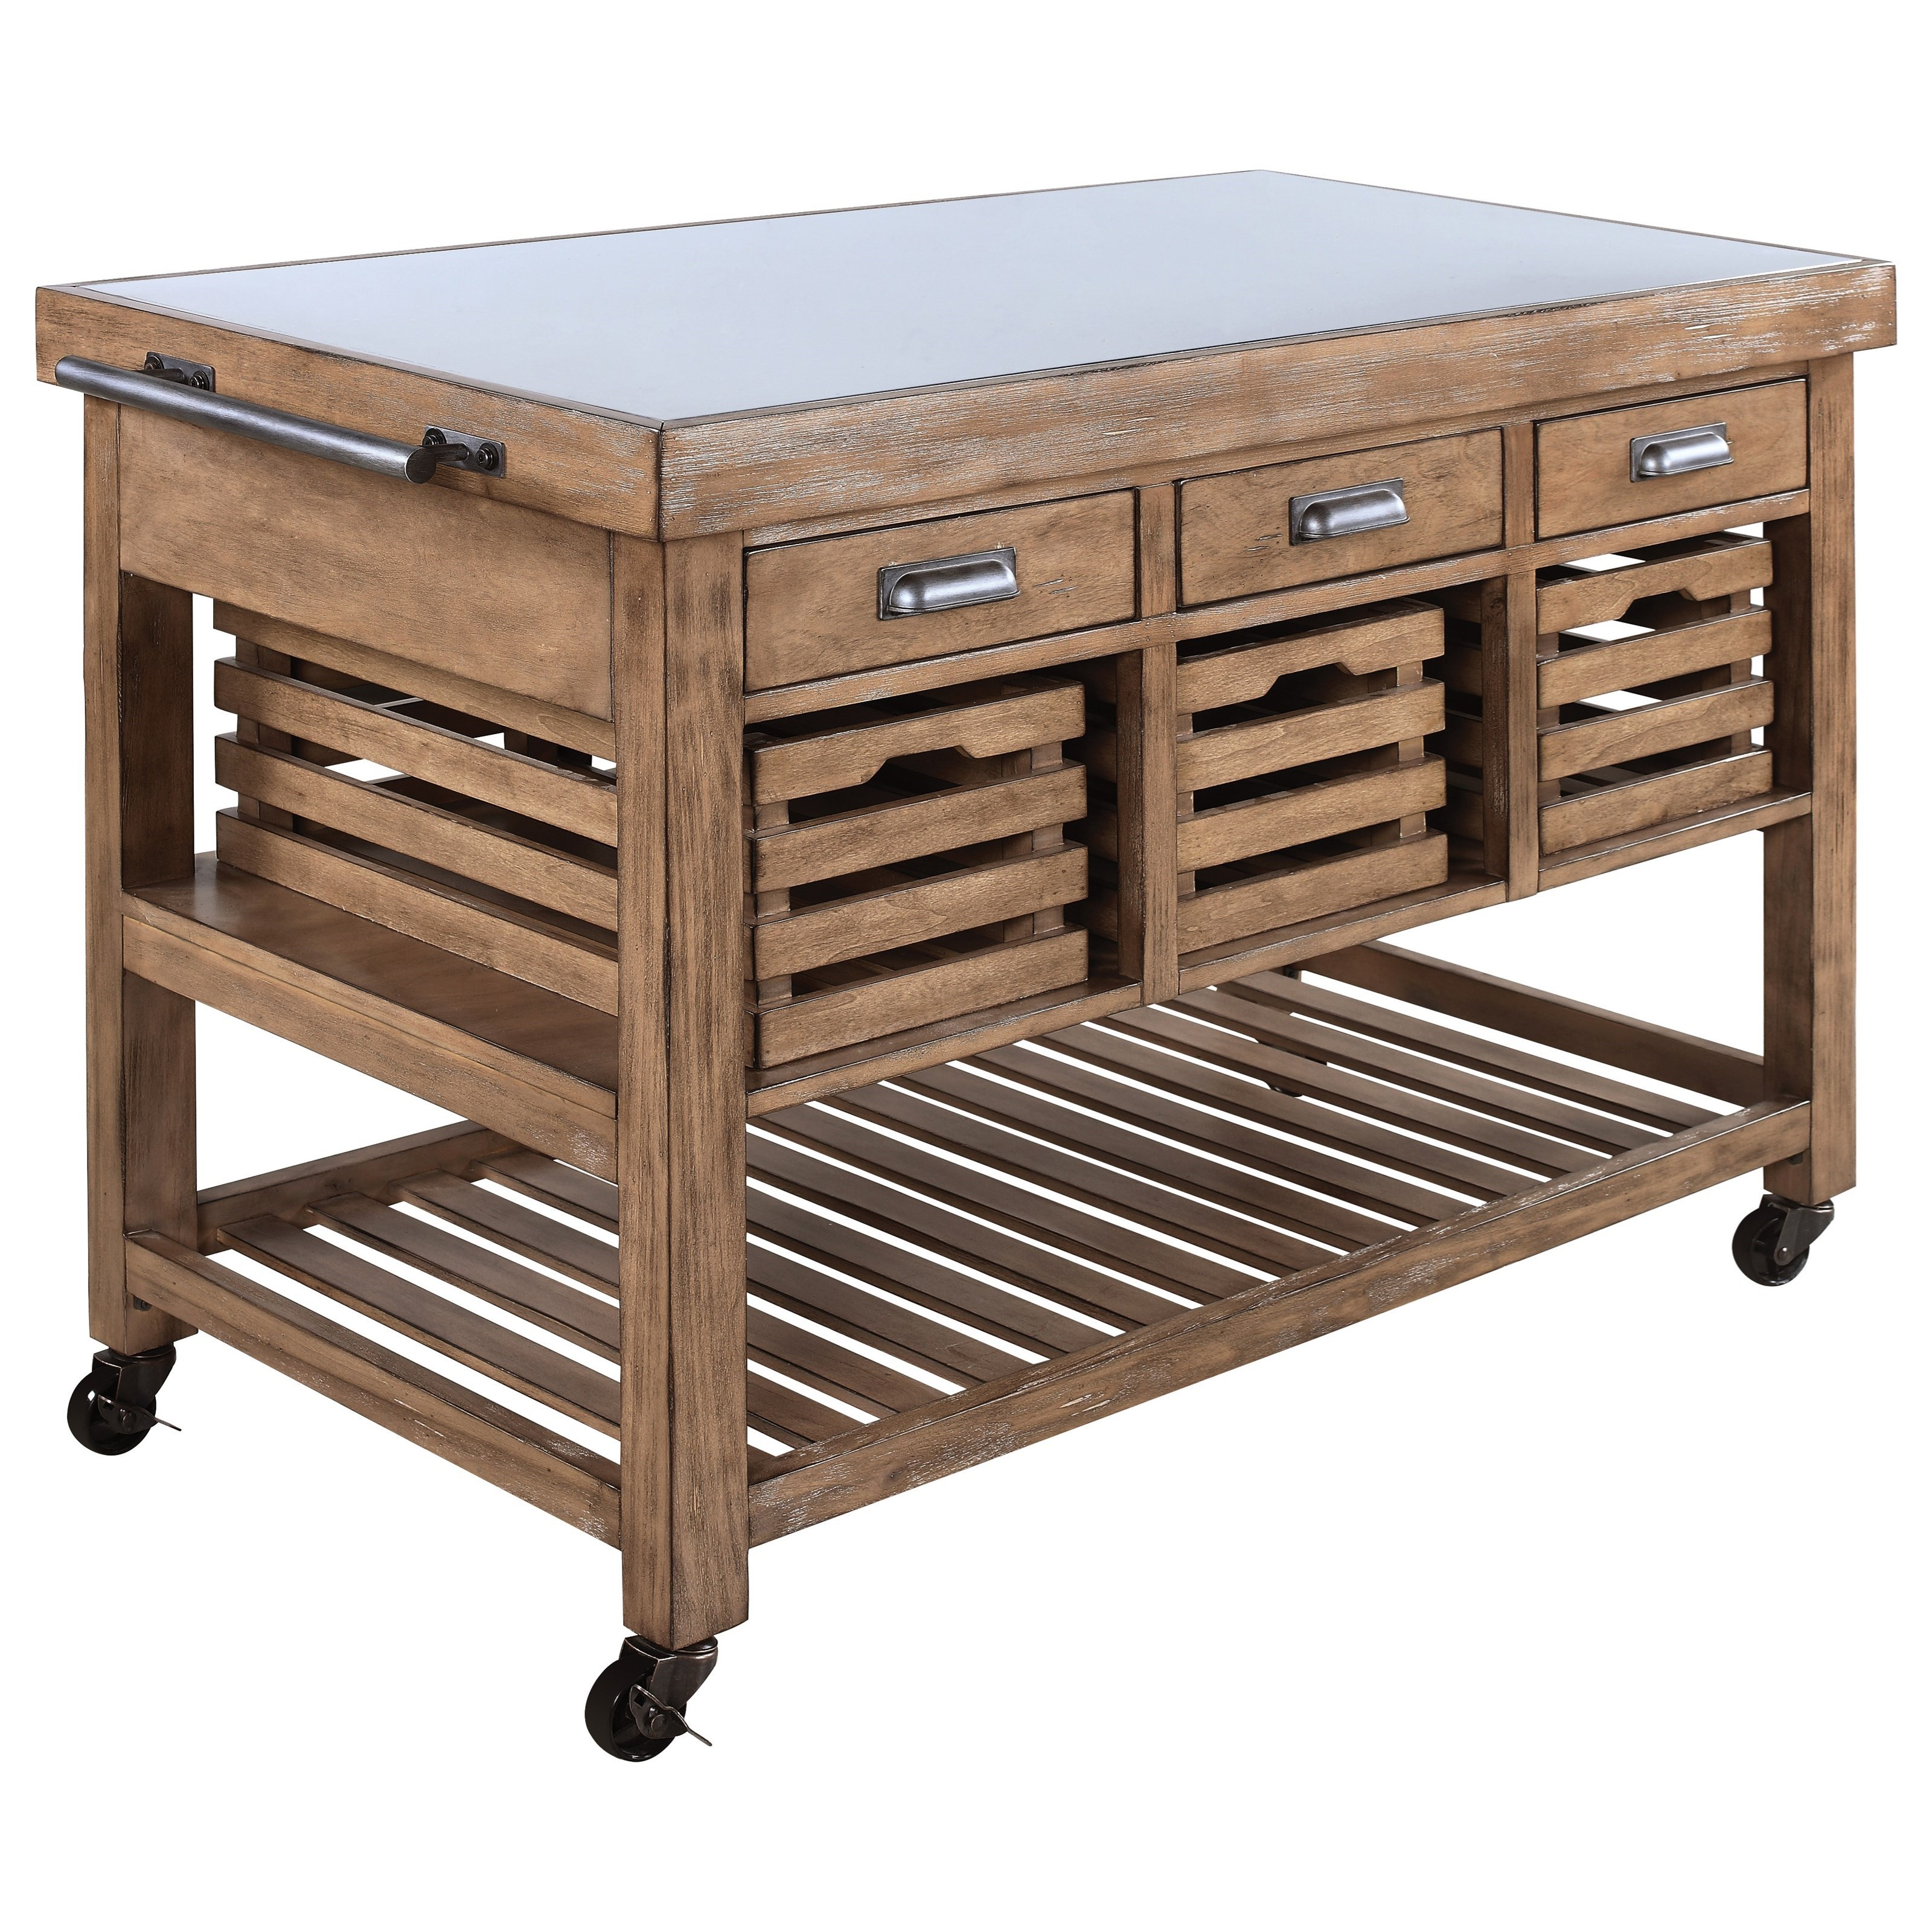 Coaster Kitchen Carts 100307 Serving Trolley With